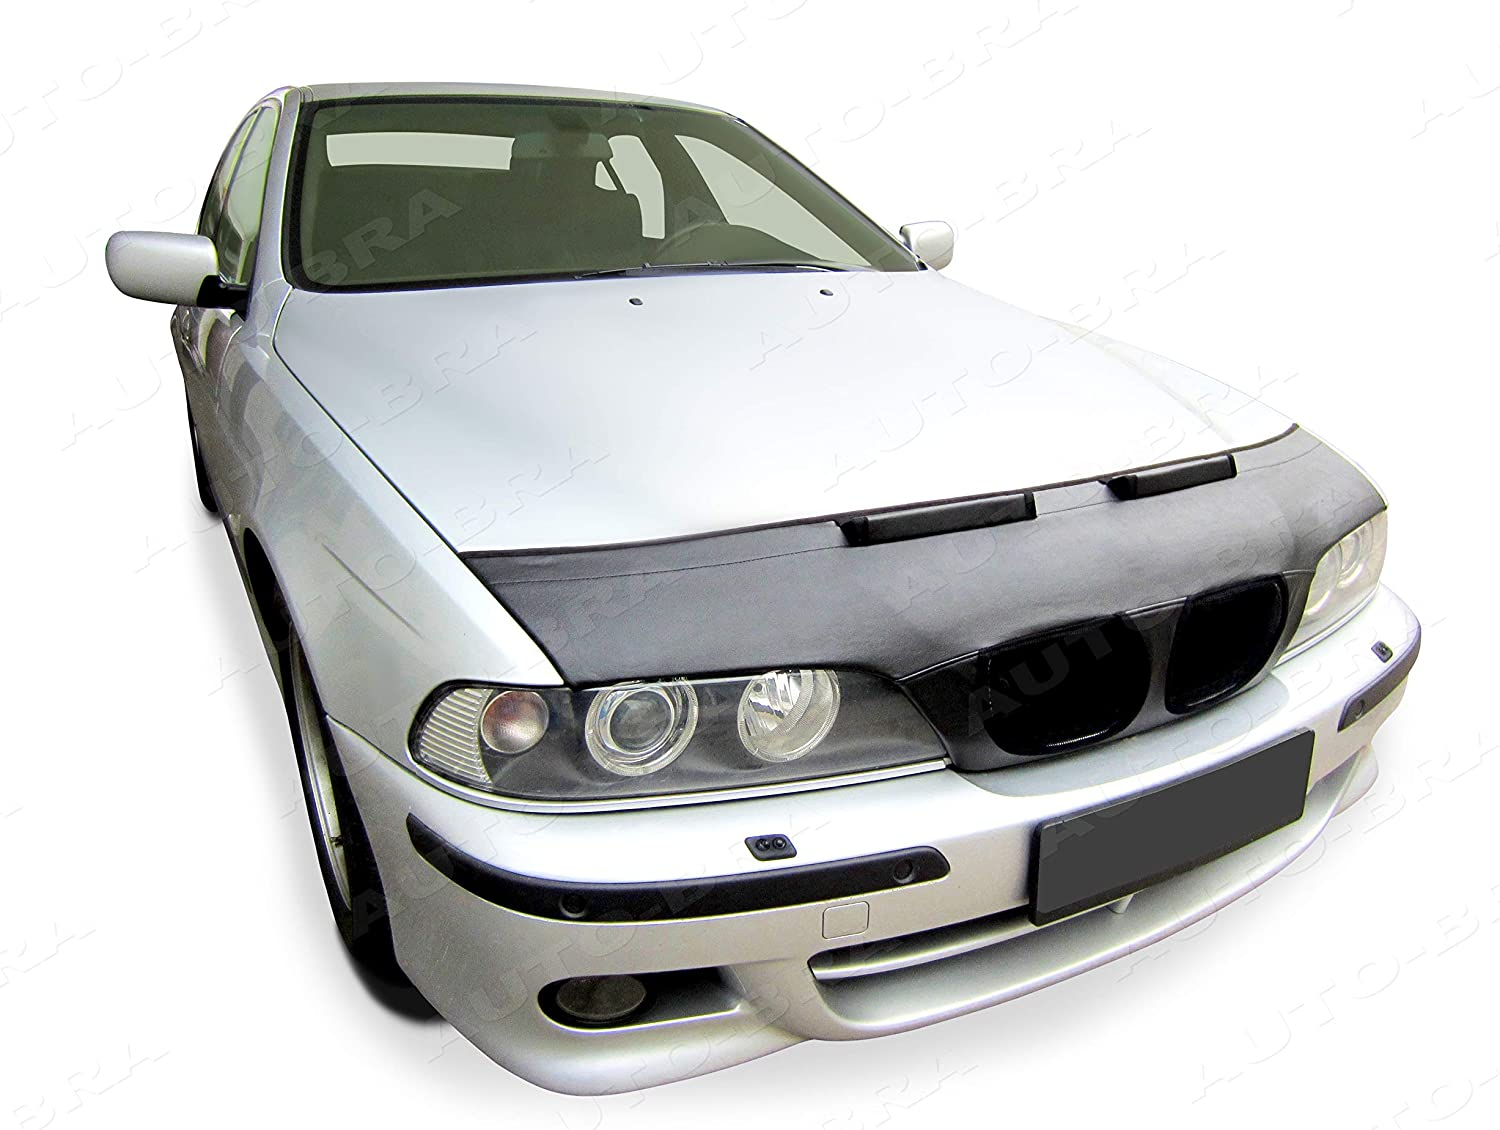 HOOD BRA Front End Nose Mask for BMW 7 E38 1994-2001 Bonnet Bra STONEGUARD PROTECTOR TUNING